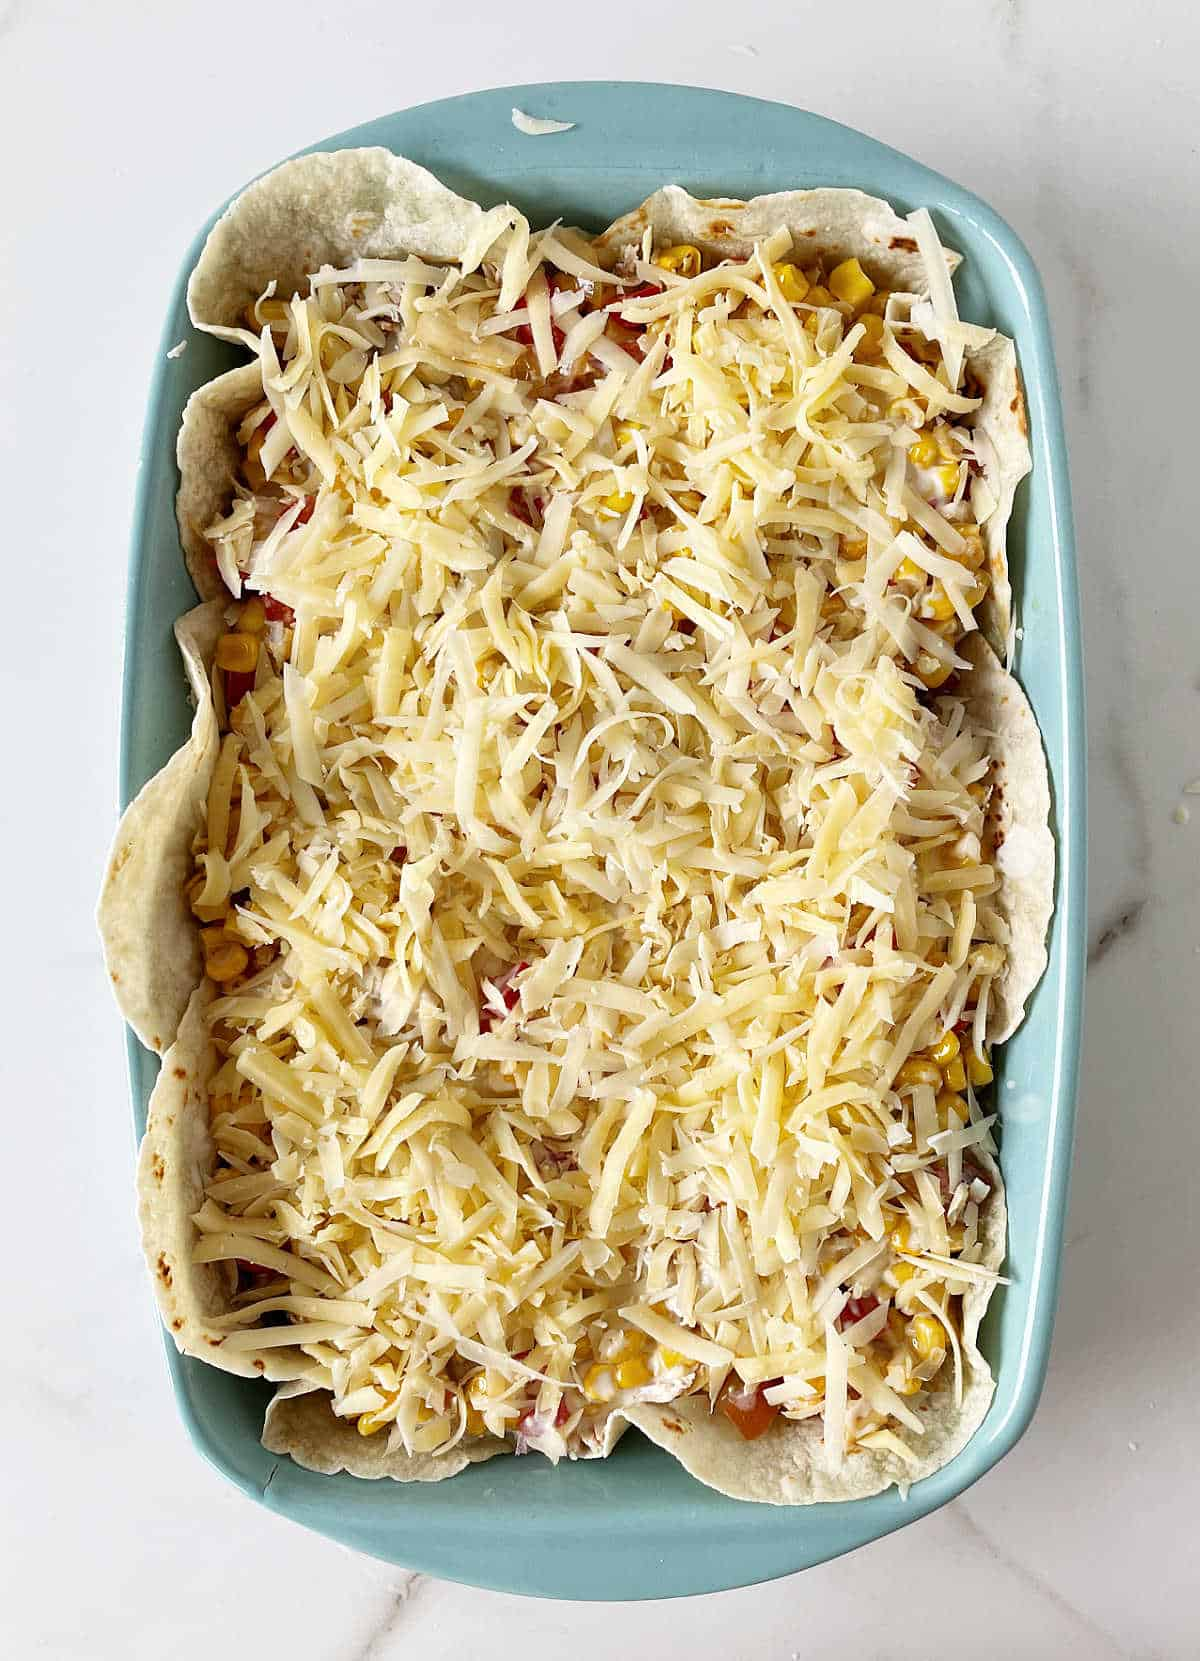 Cheese topped unbaked chicken casserole in blue dish on white surface